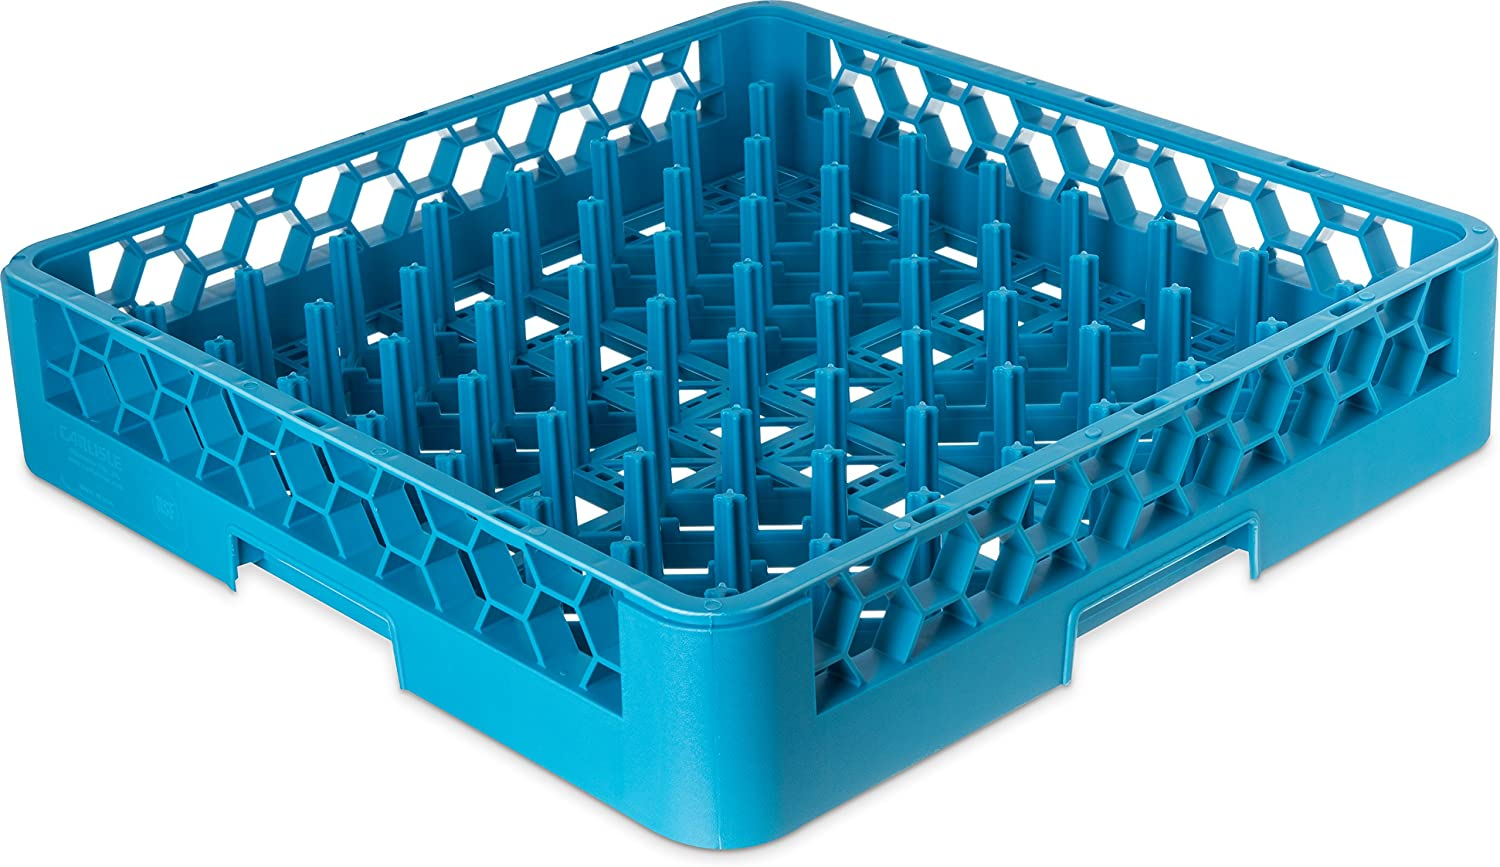 "Carlisle RP14 OptiClean All-Purpose Plate & Tray Rack, Polypropylene, 20.75"" Length, 20.50"" Width, 4.00"" Height, Blue (Case of 6)"